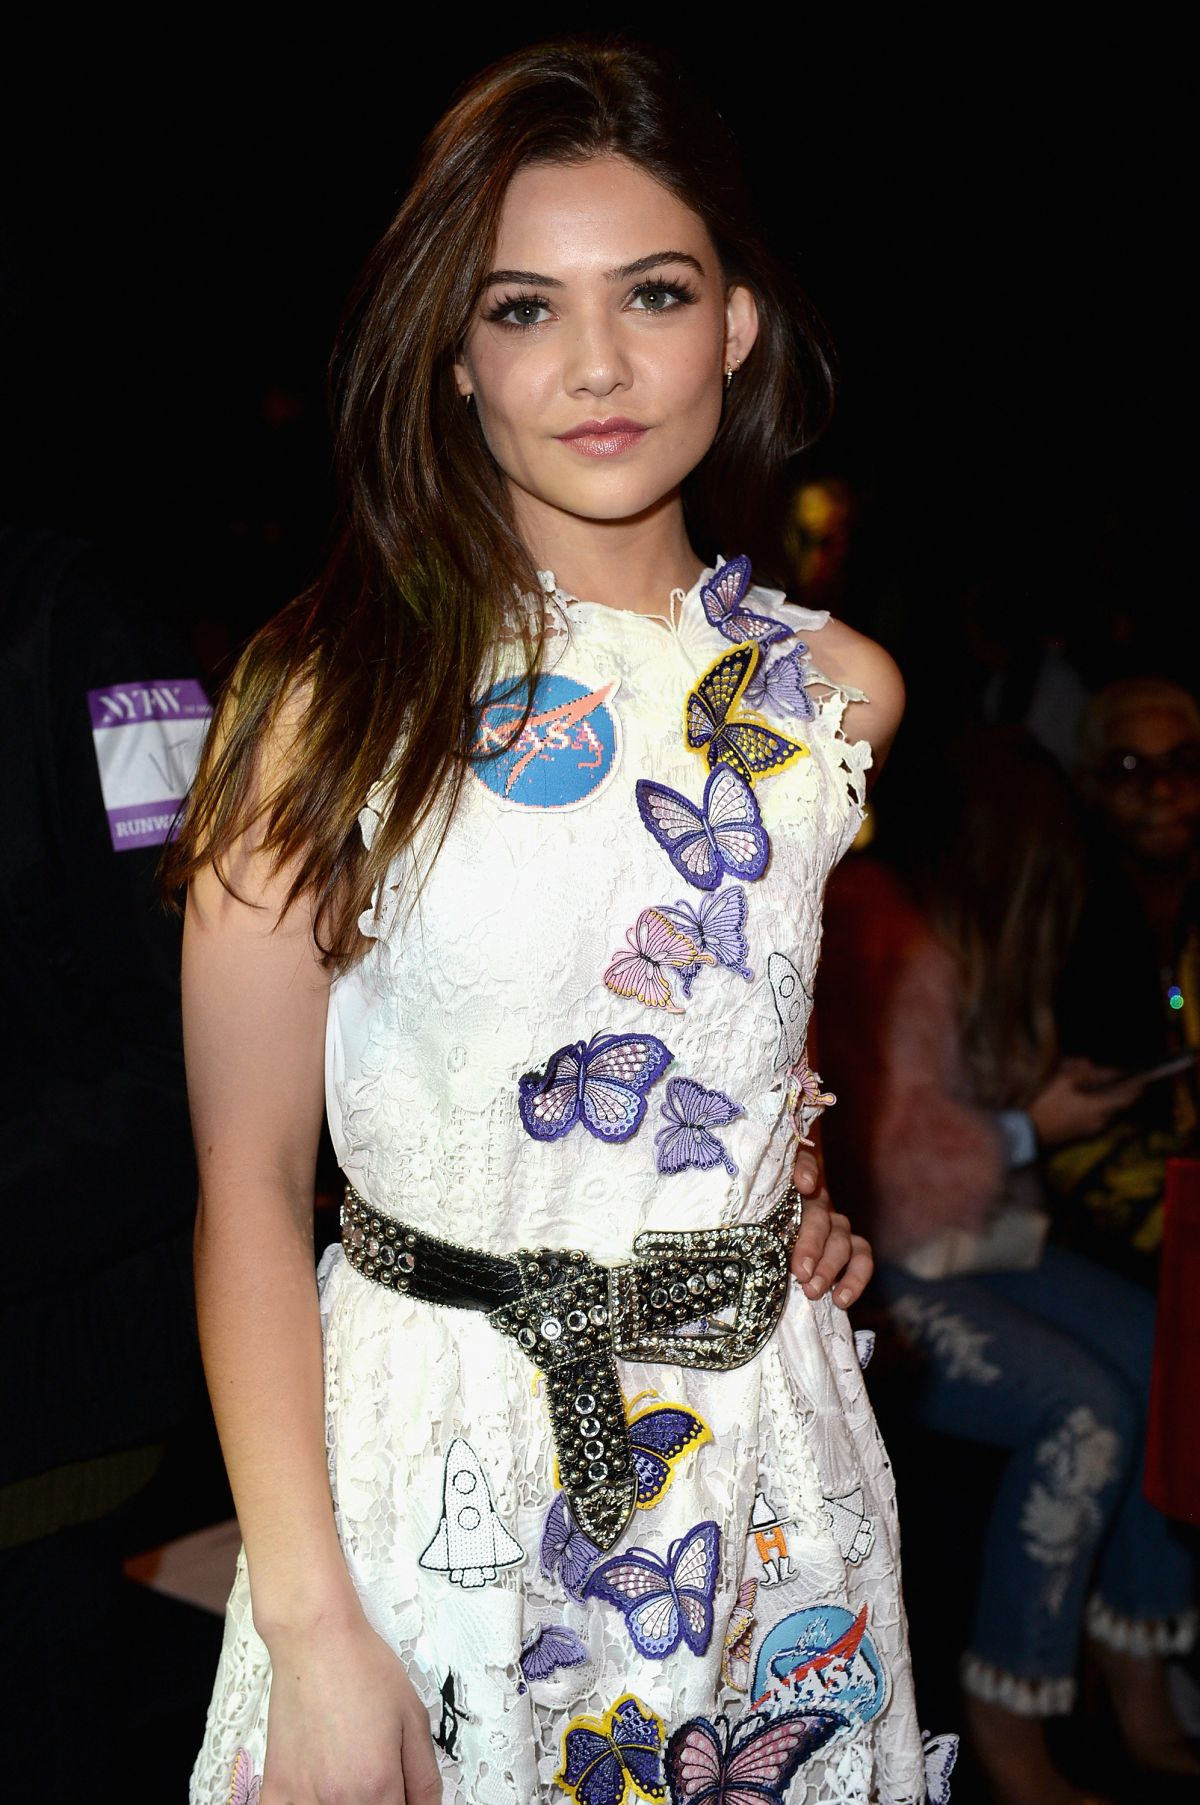 Danielle Does Makeup L L C: DANIELLE CAMPBELL At Vivienne Tam Fashion Show In New York